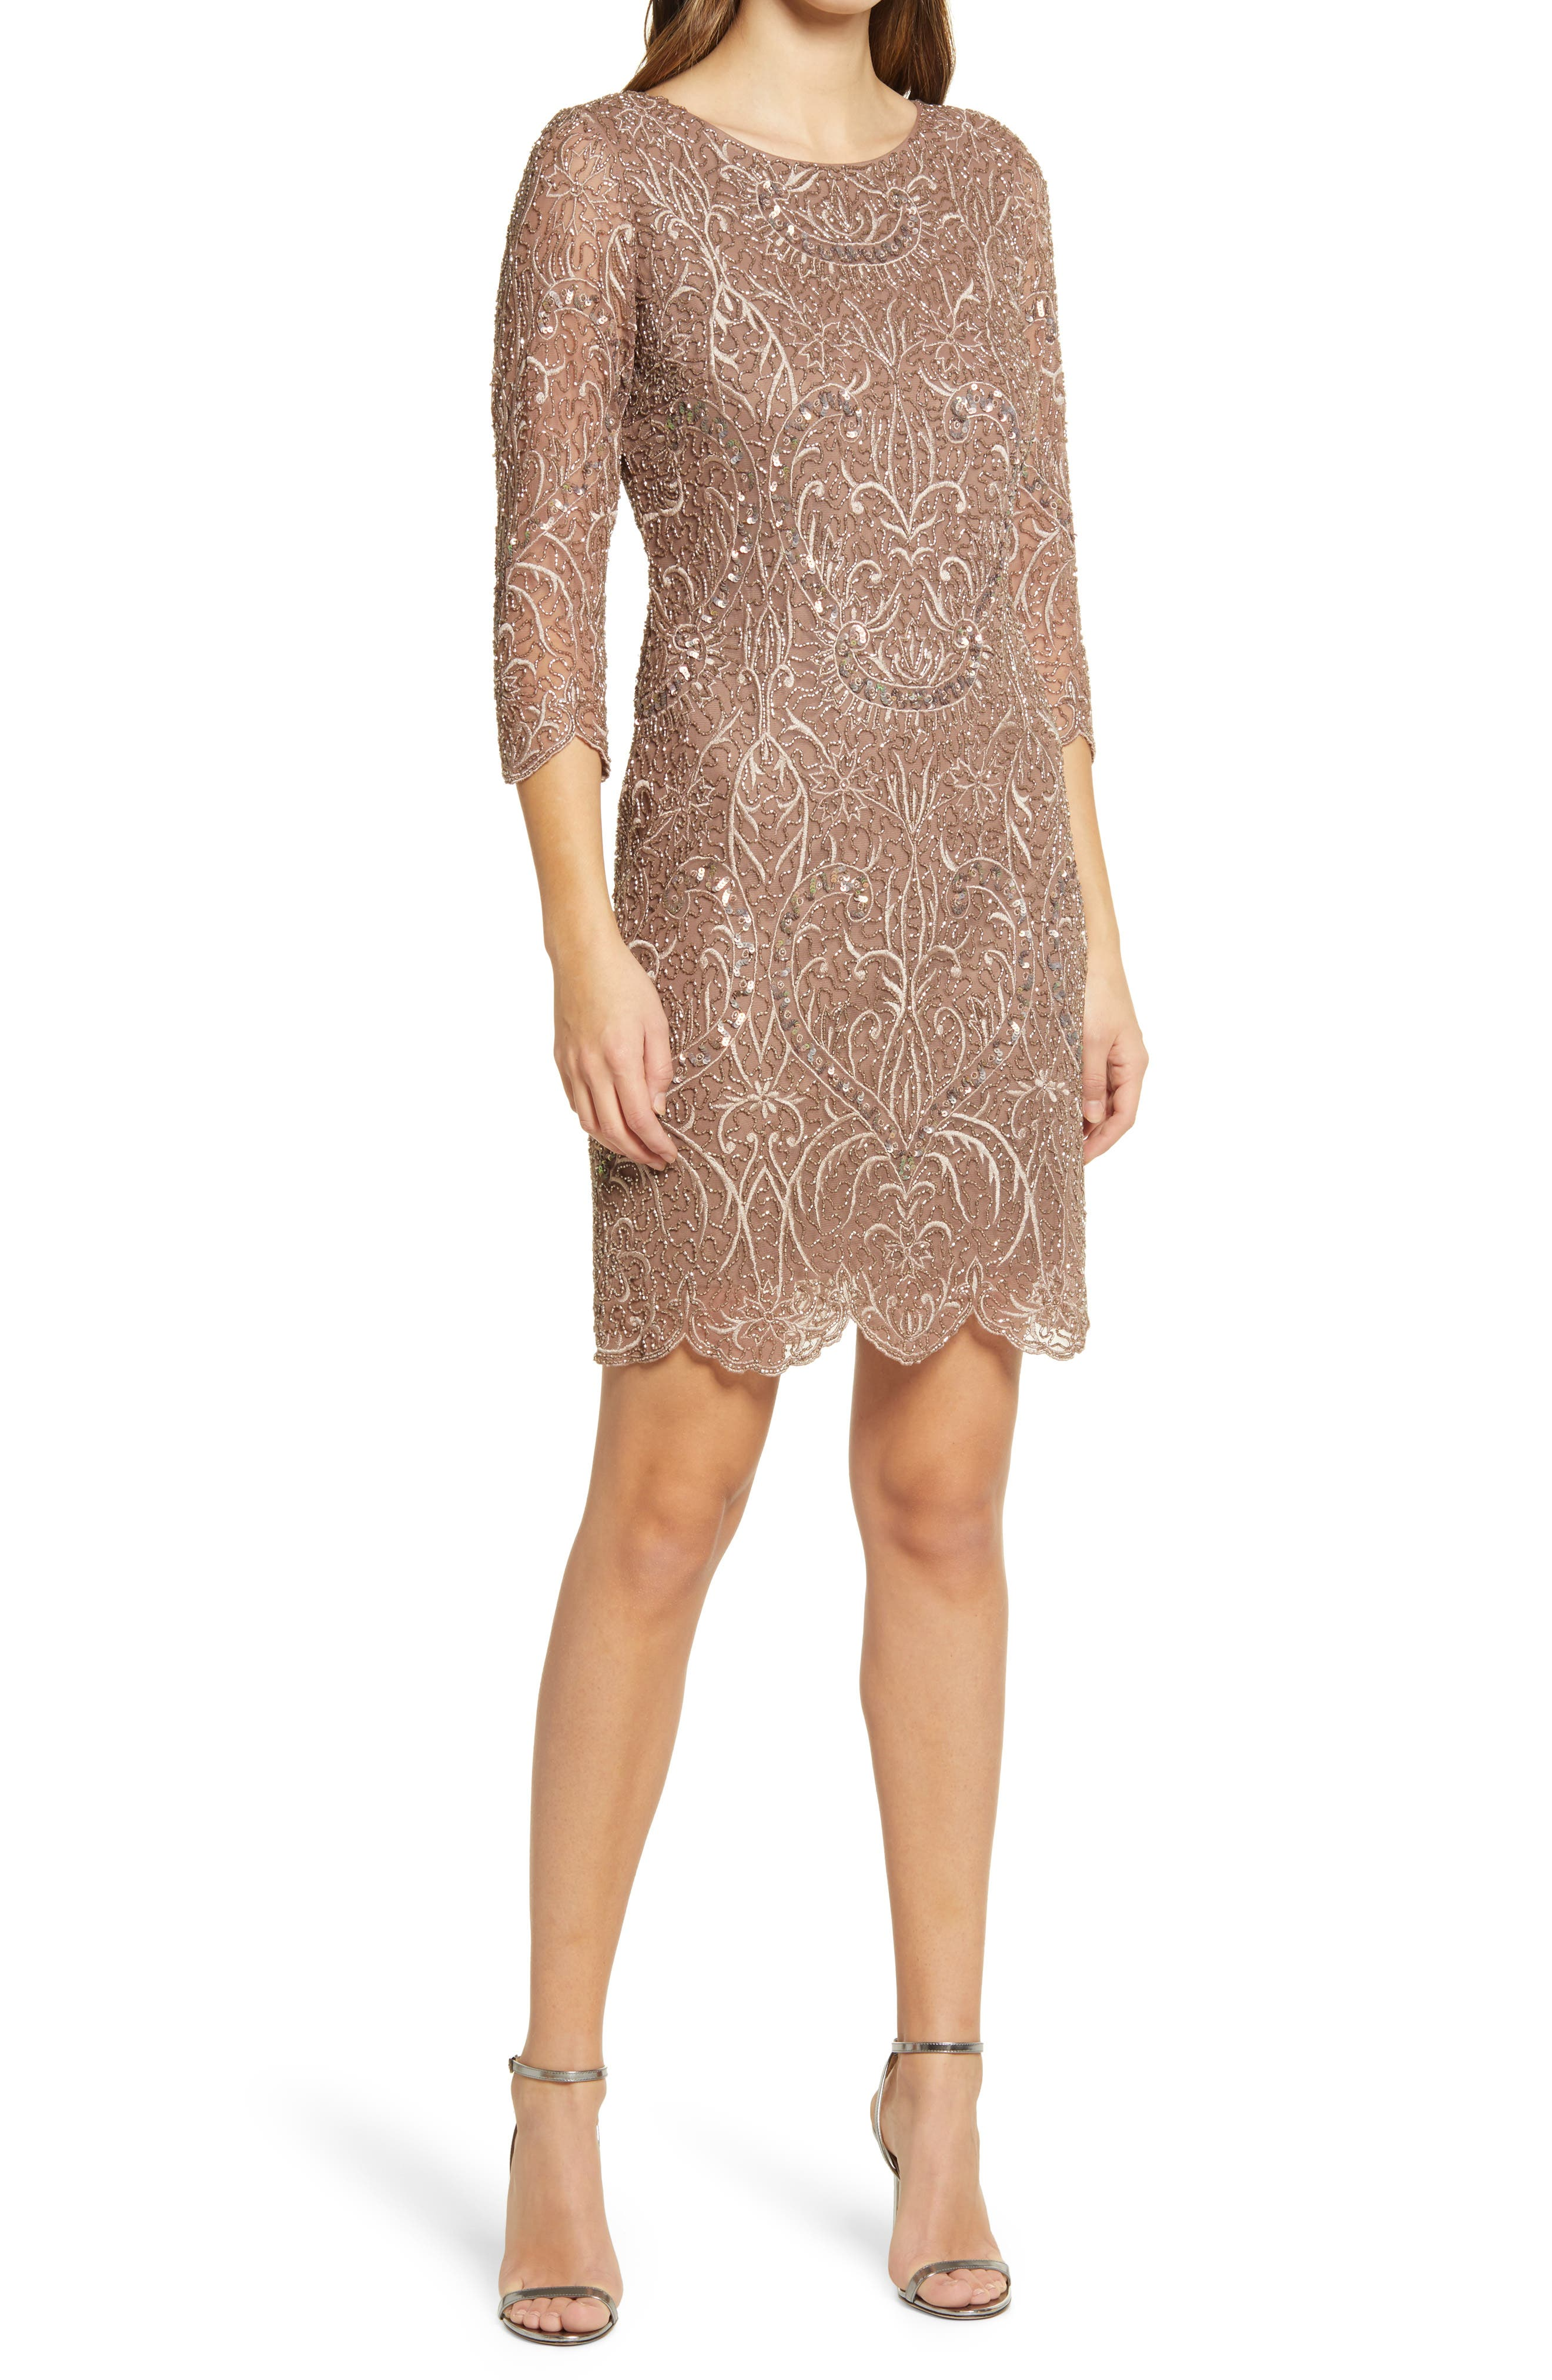 Great Gatsby Dress – Great Gatsby Dresses for Sale Womens Pisarro Nights Embroidered Cocktail Dress Size 18 - Beige $218.00 AT vintagedancer.com